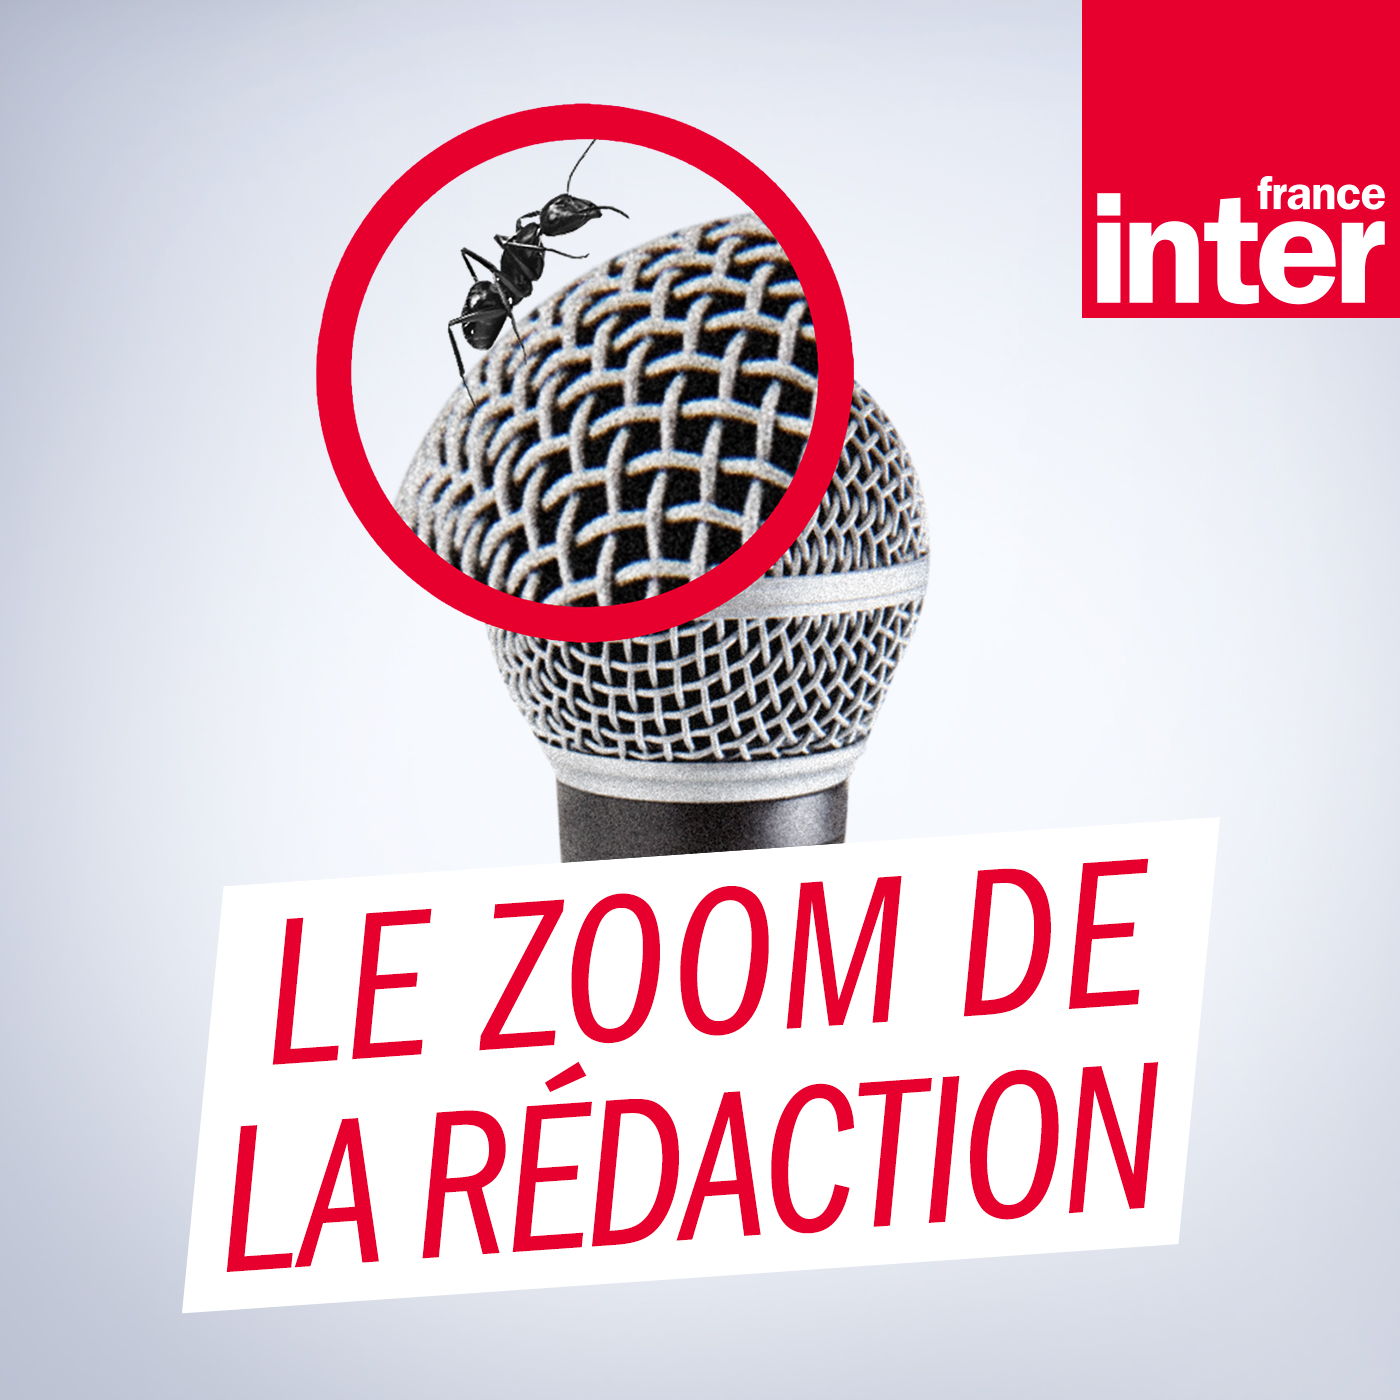 Le zoom de la rédaction